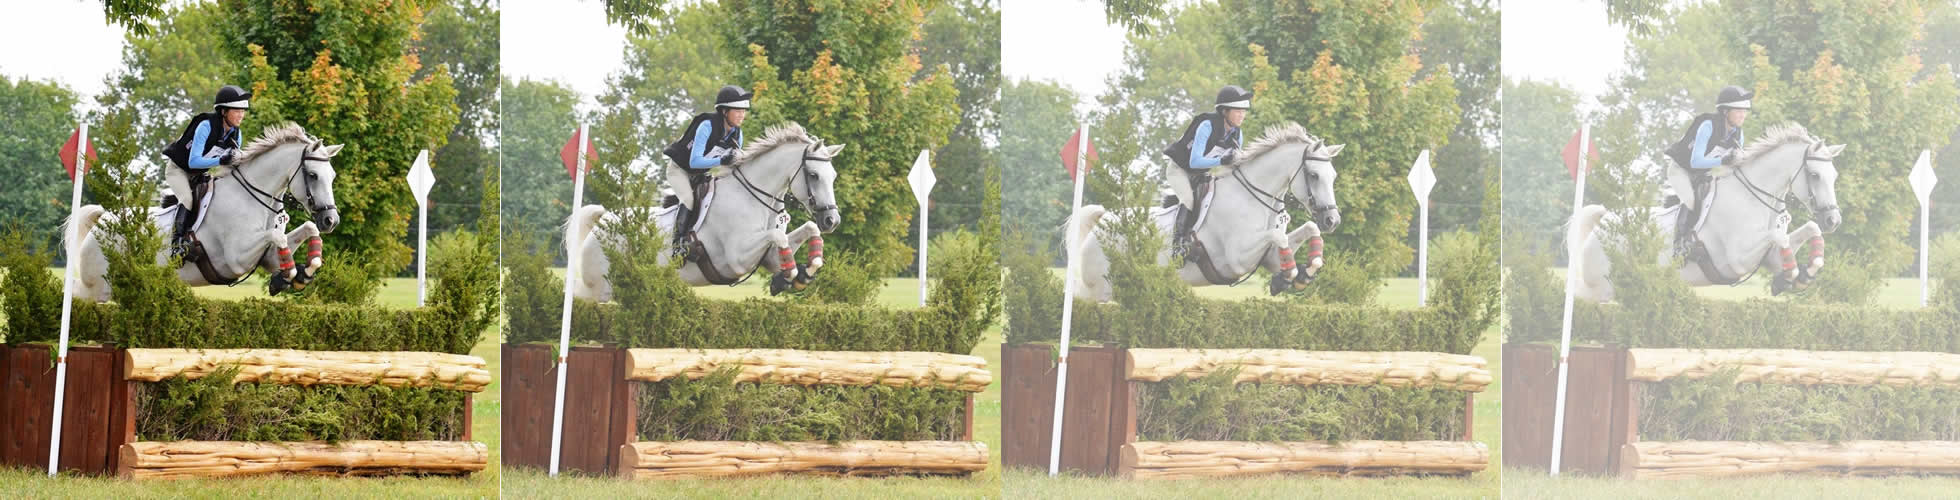 Eventing at Spring Run Farm